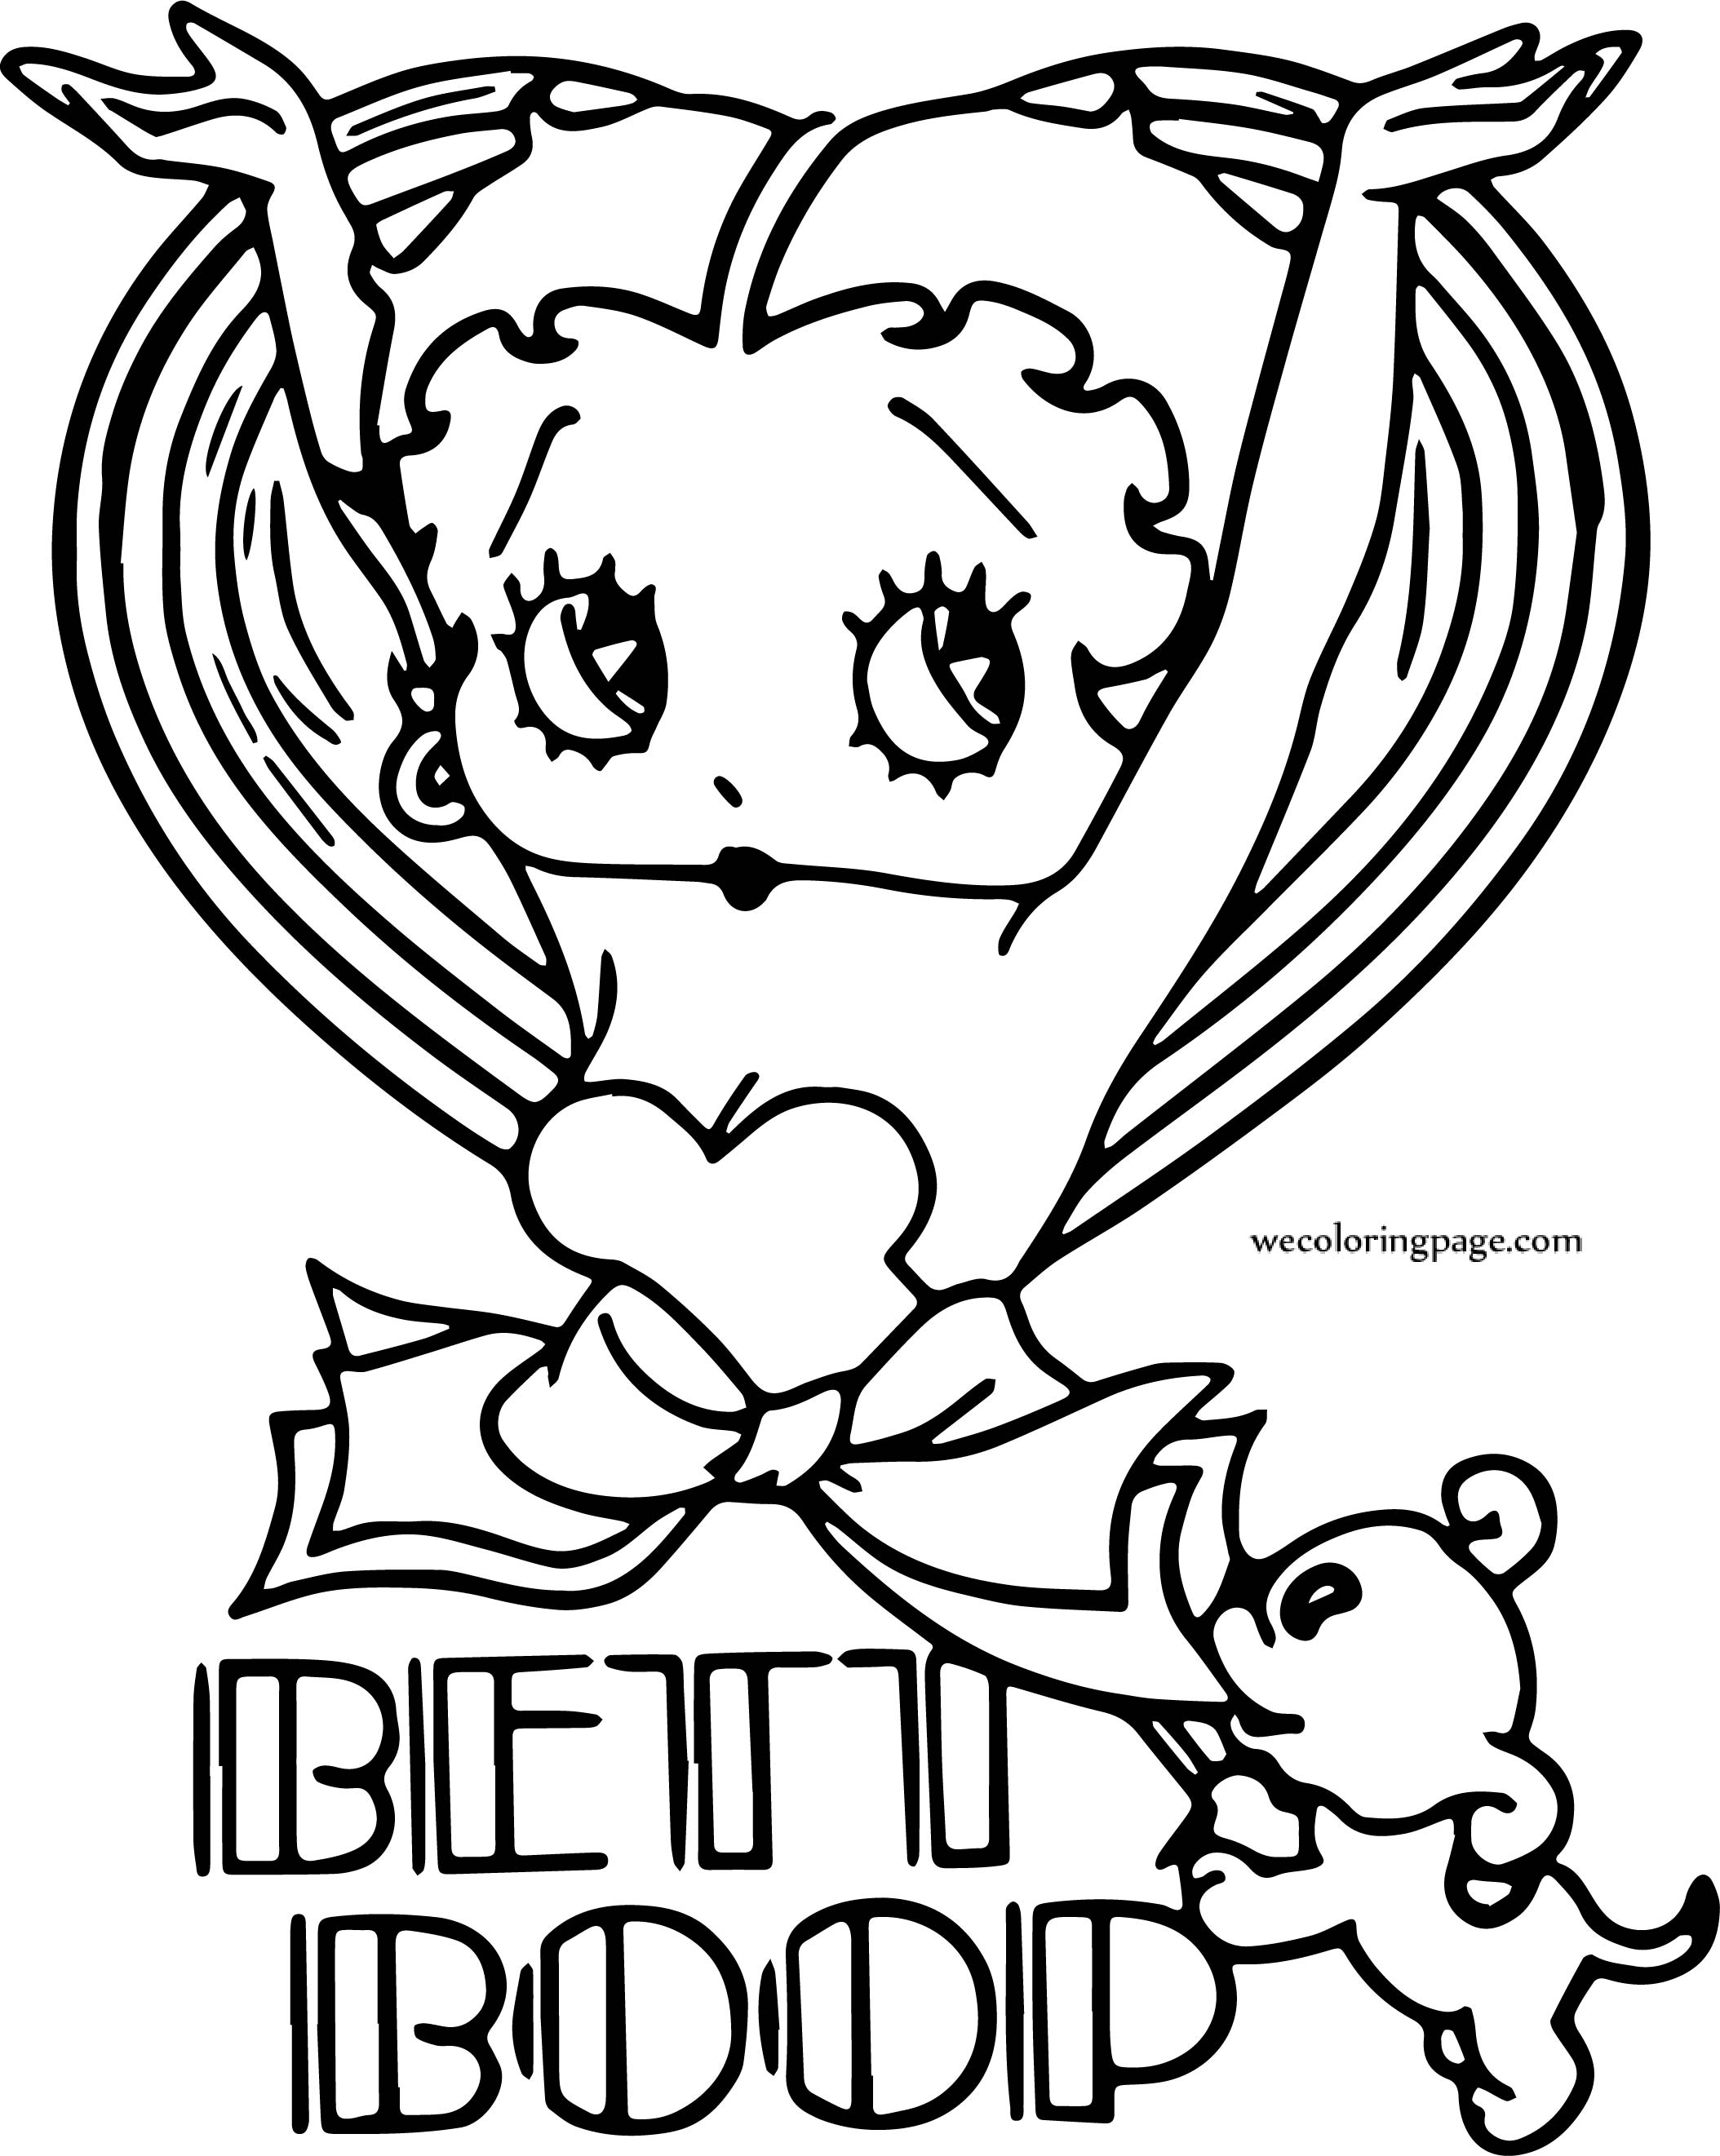 Betty Boop And Dog Cover Coloring Page